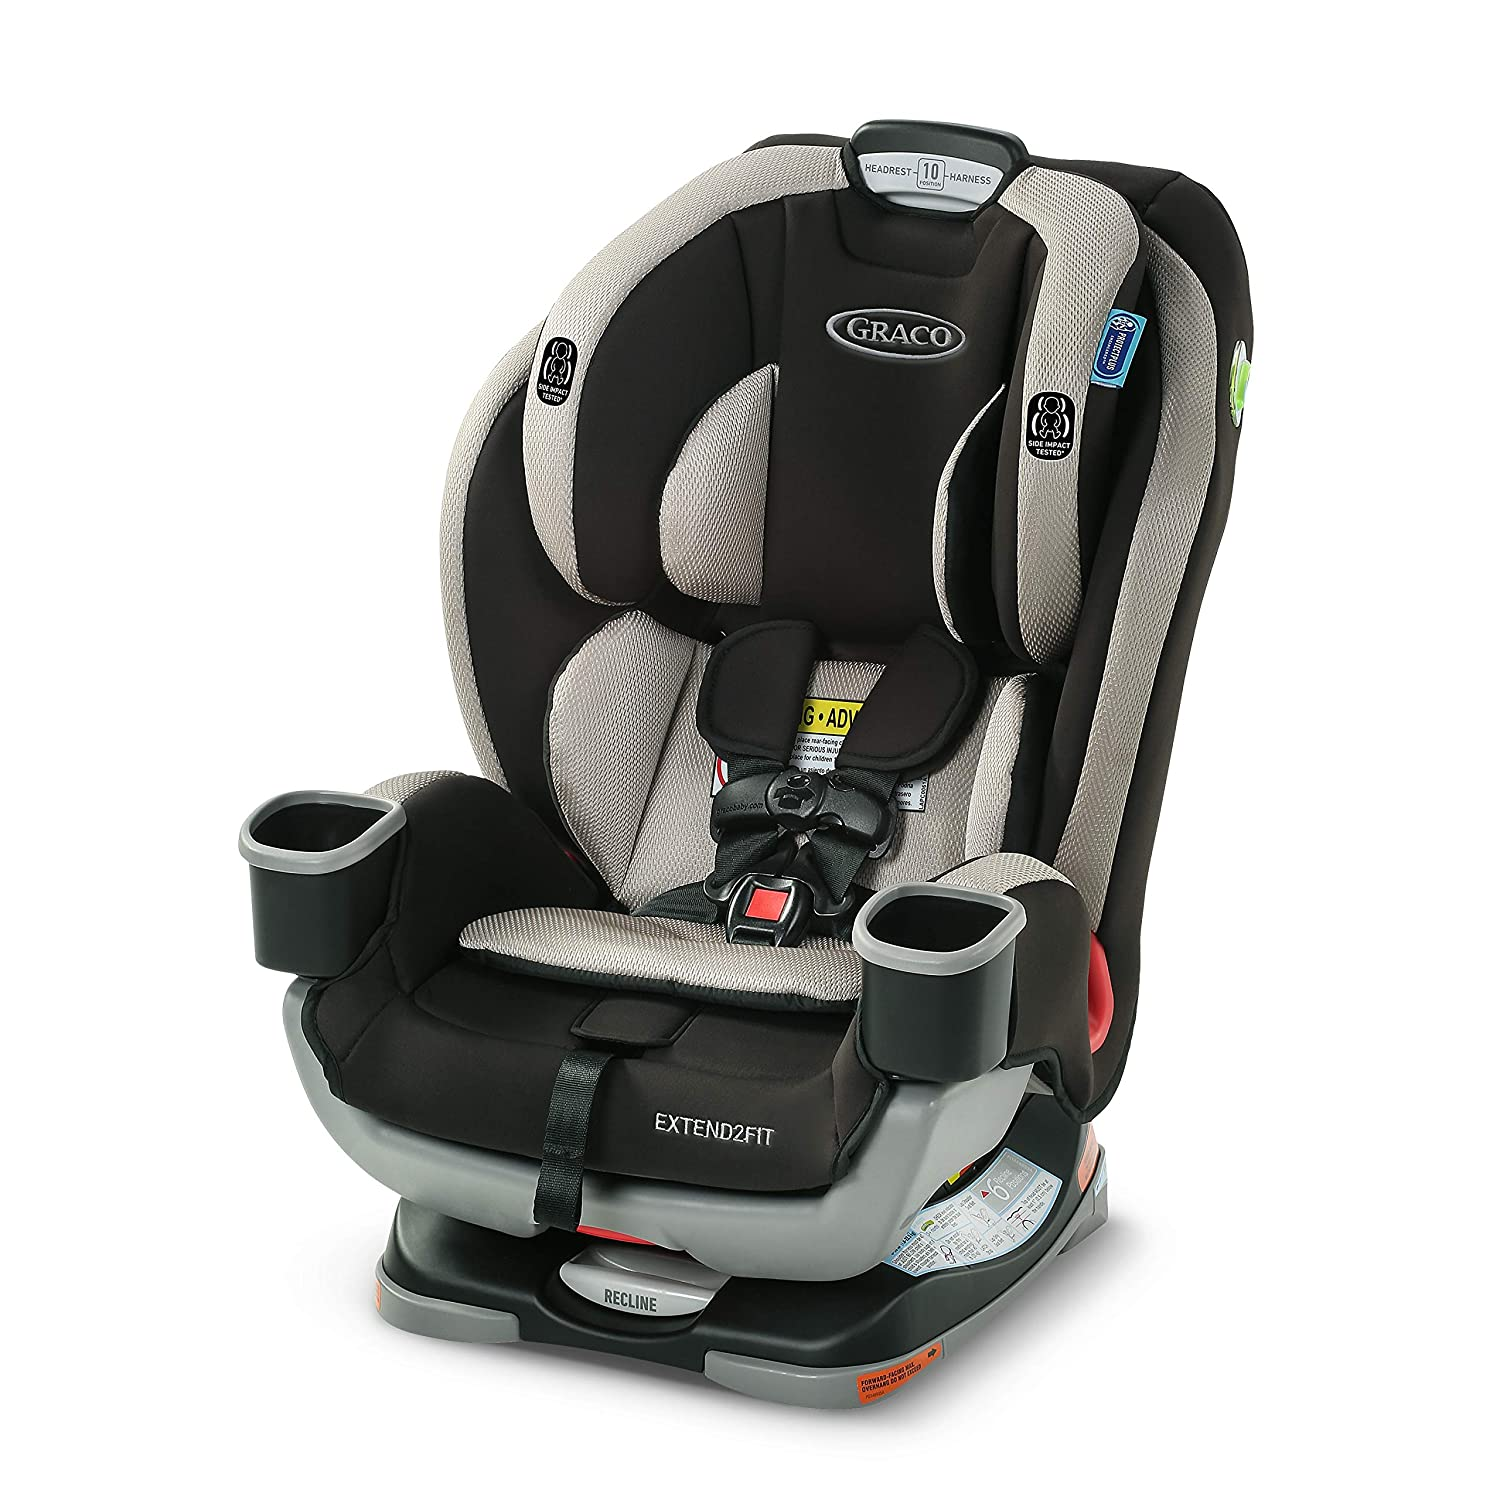 GRACO Extend2Fit Stocklyn